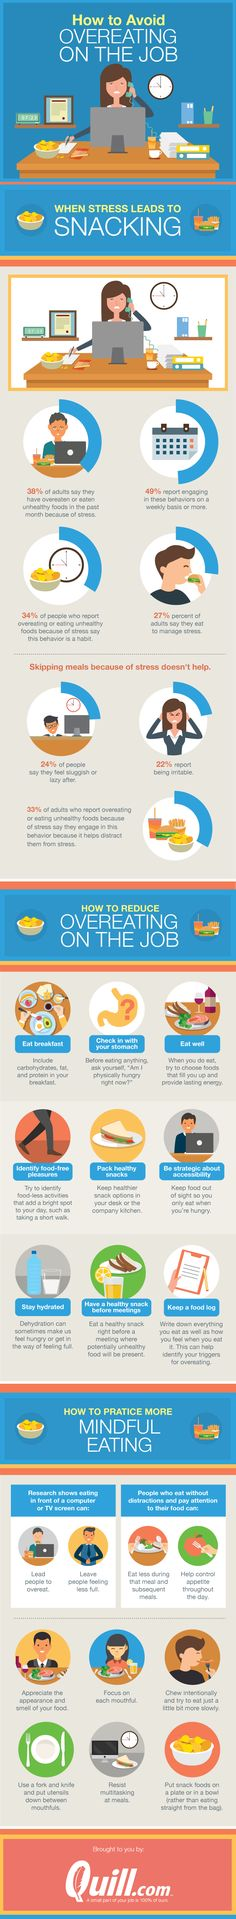 How To Avoid Overeating On The Job #Infographic #Eating